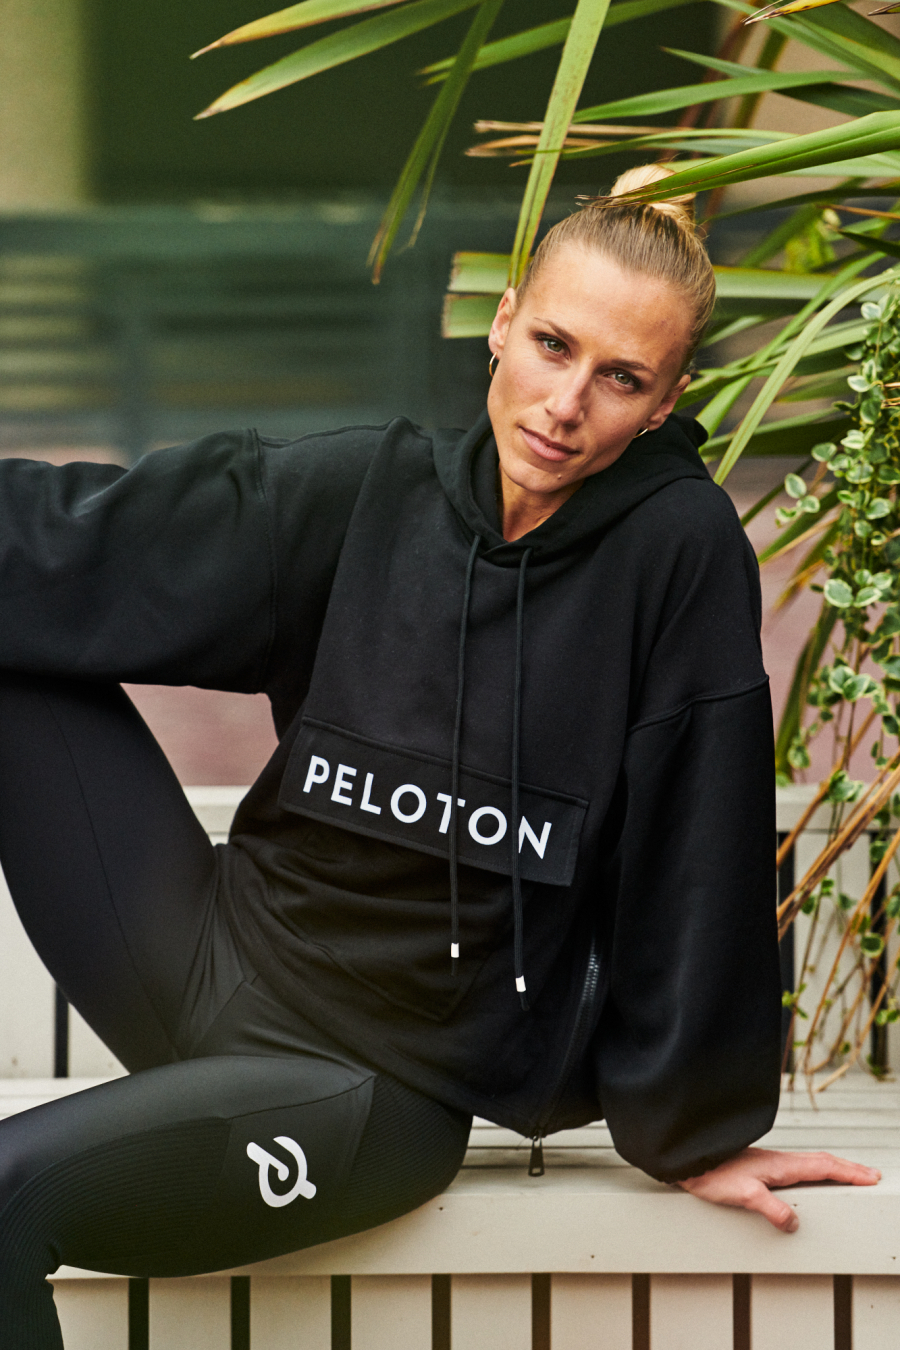 Dominic Marley Sports lifestyle and fashion photographer shoots Irene Scholz for Peloton